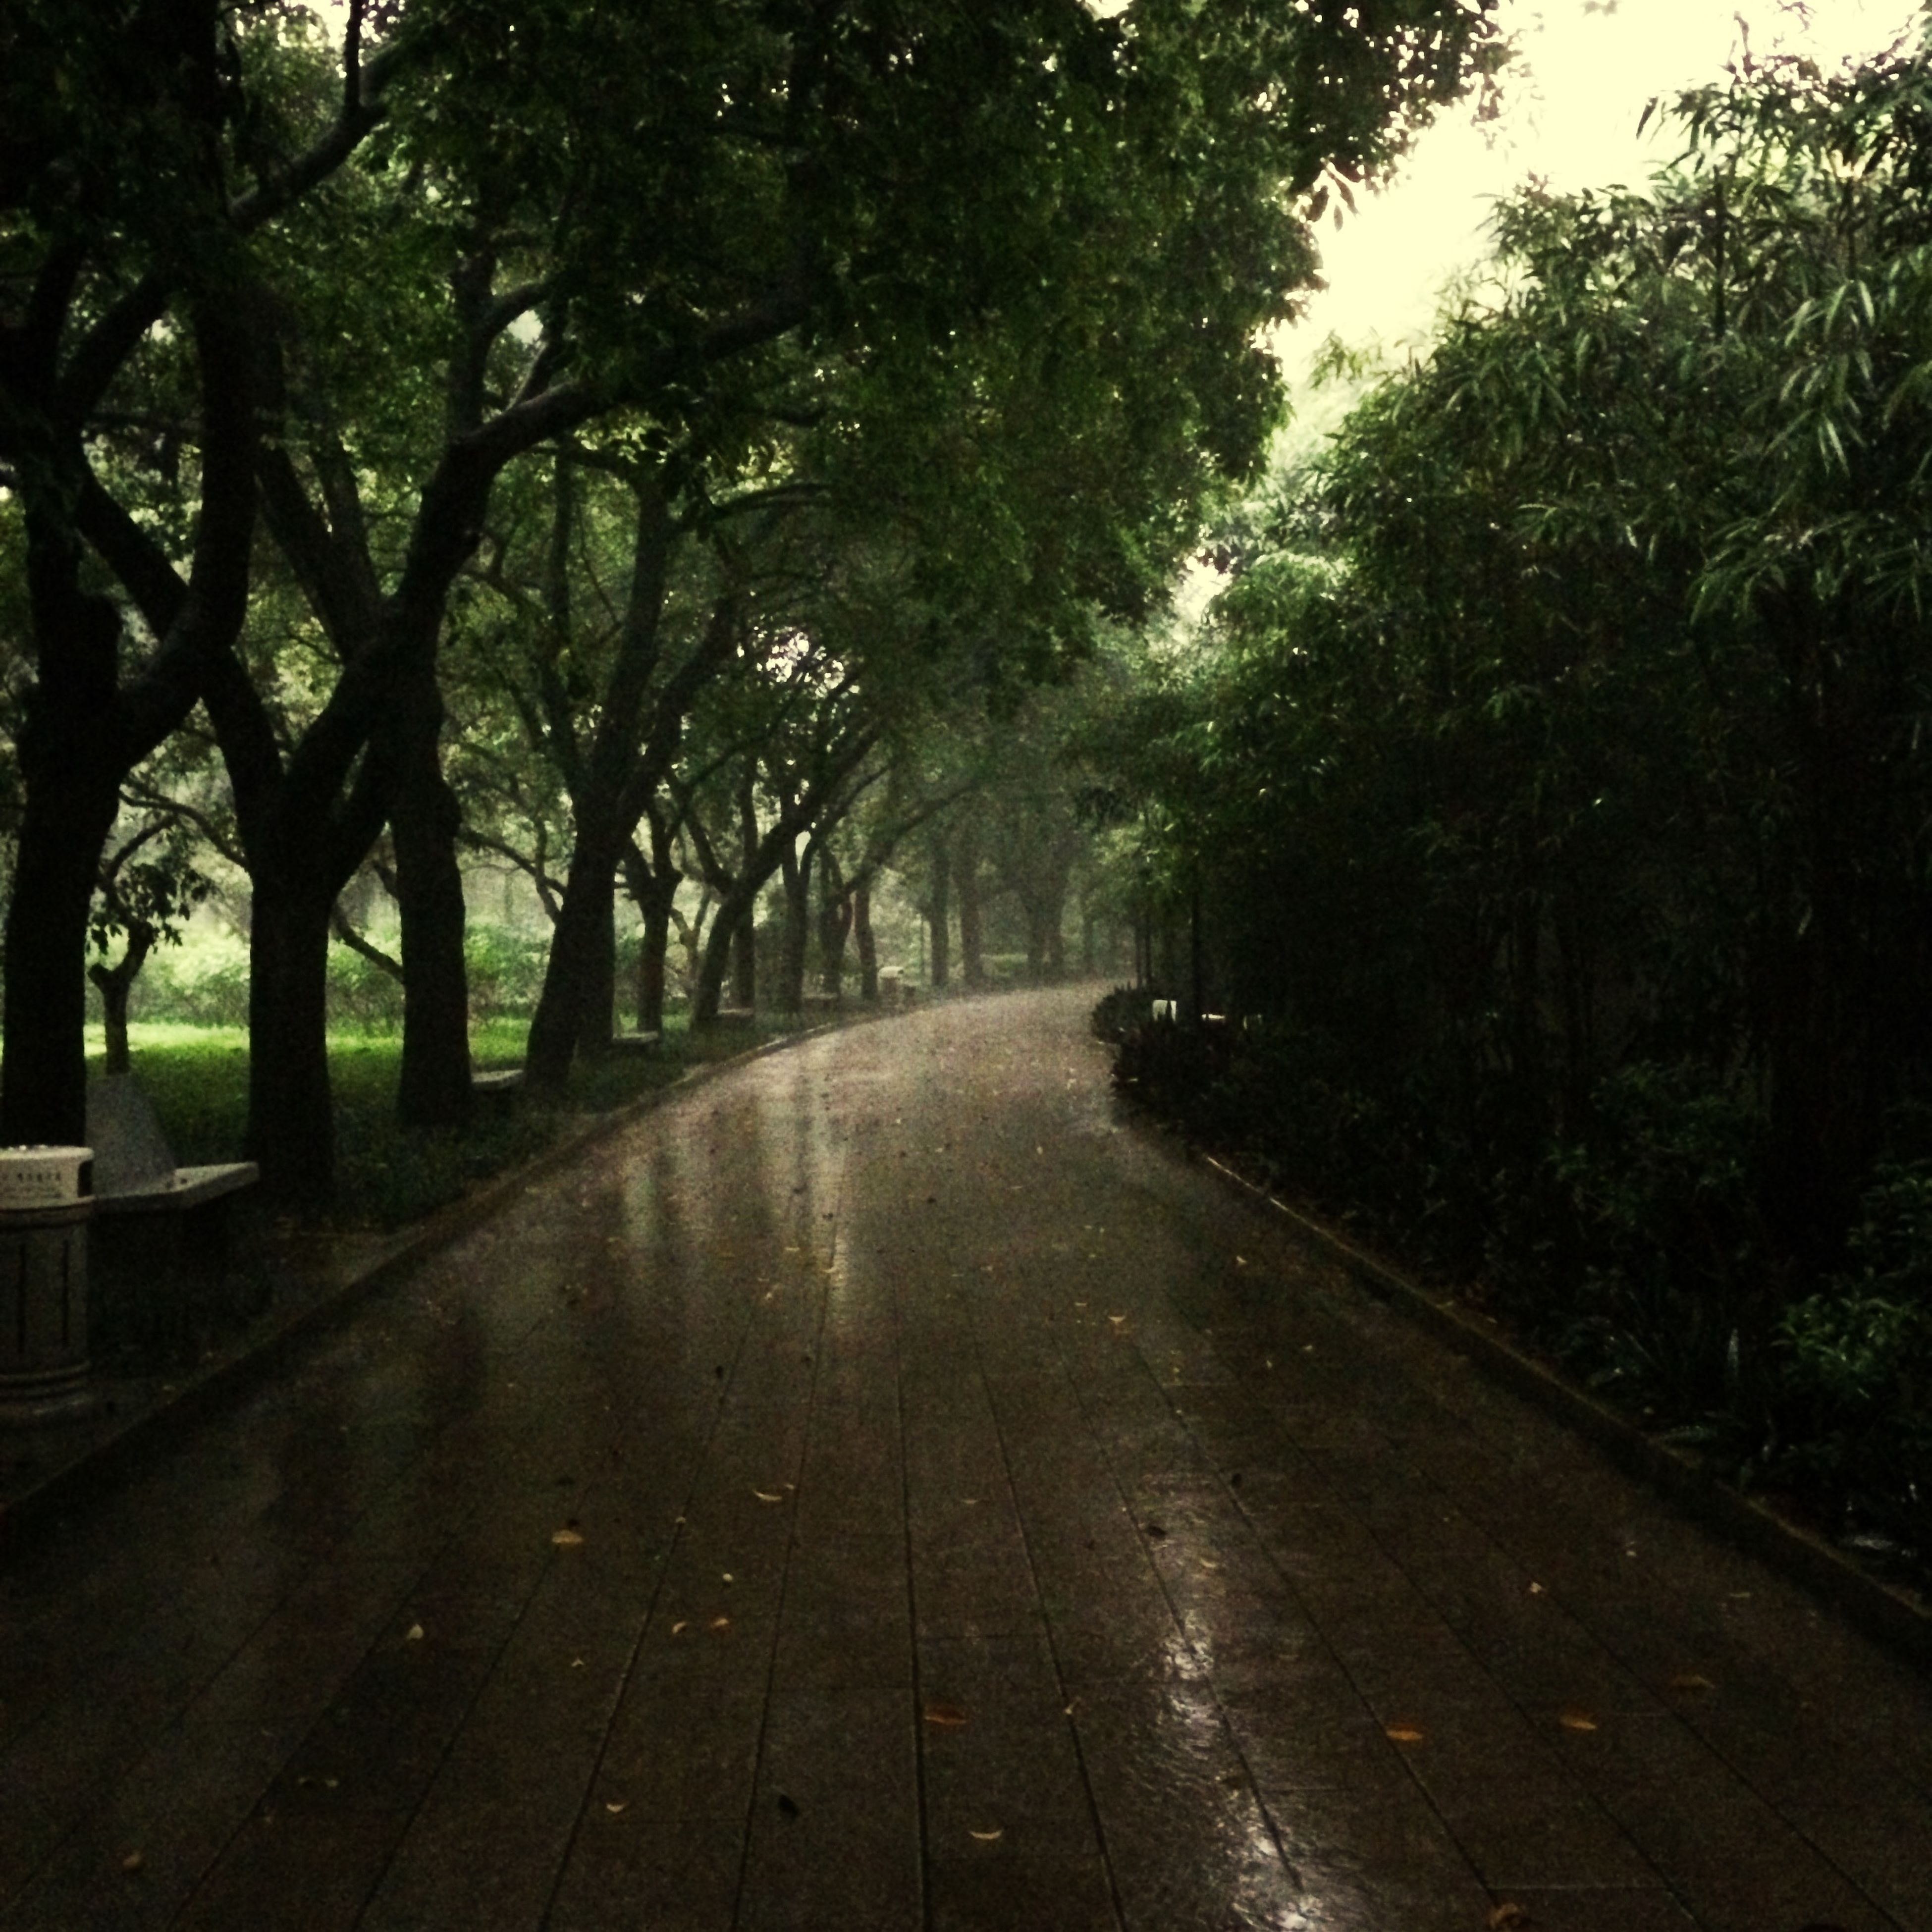 the way forward, tree, diminishing perspective, vanishing point, road, tranquility, treelined, nature, growth, transportation, empty road, tranquil scene, street, footpath, beauty in nature, forest, day, no people, outdoors, empty